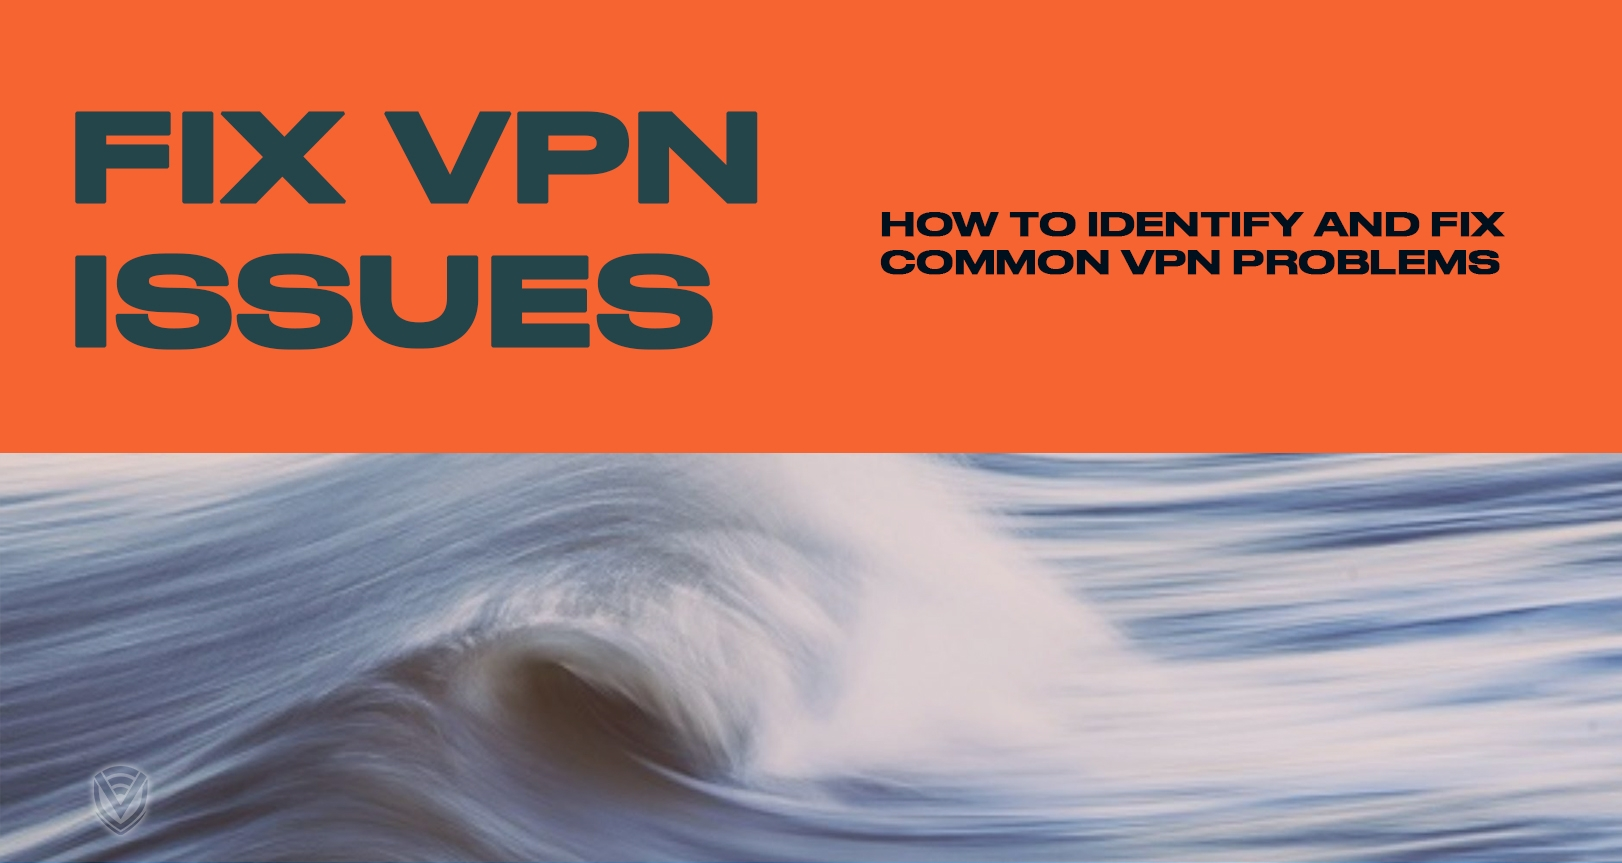 Fixing Common VPN Issues